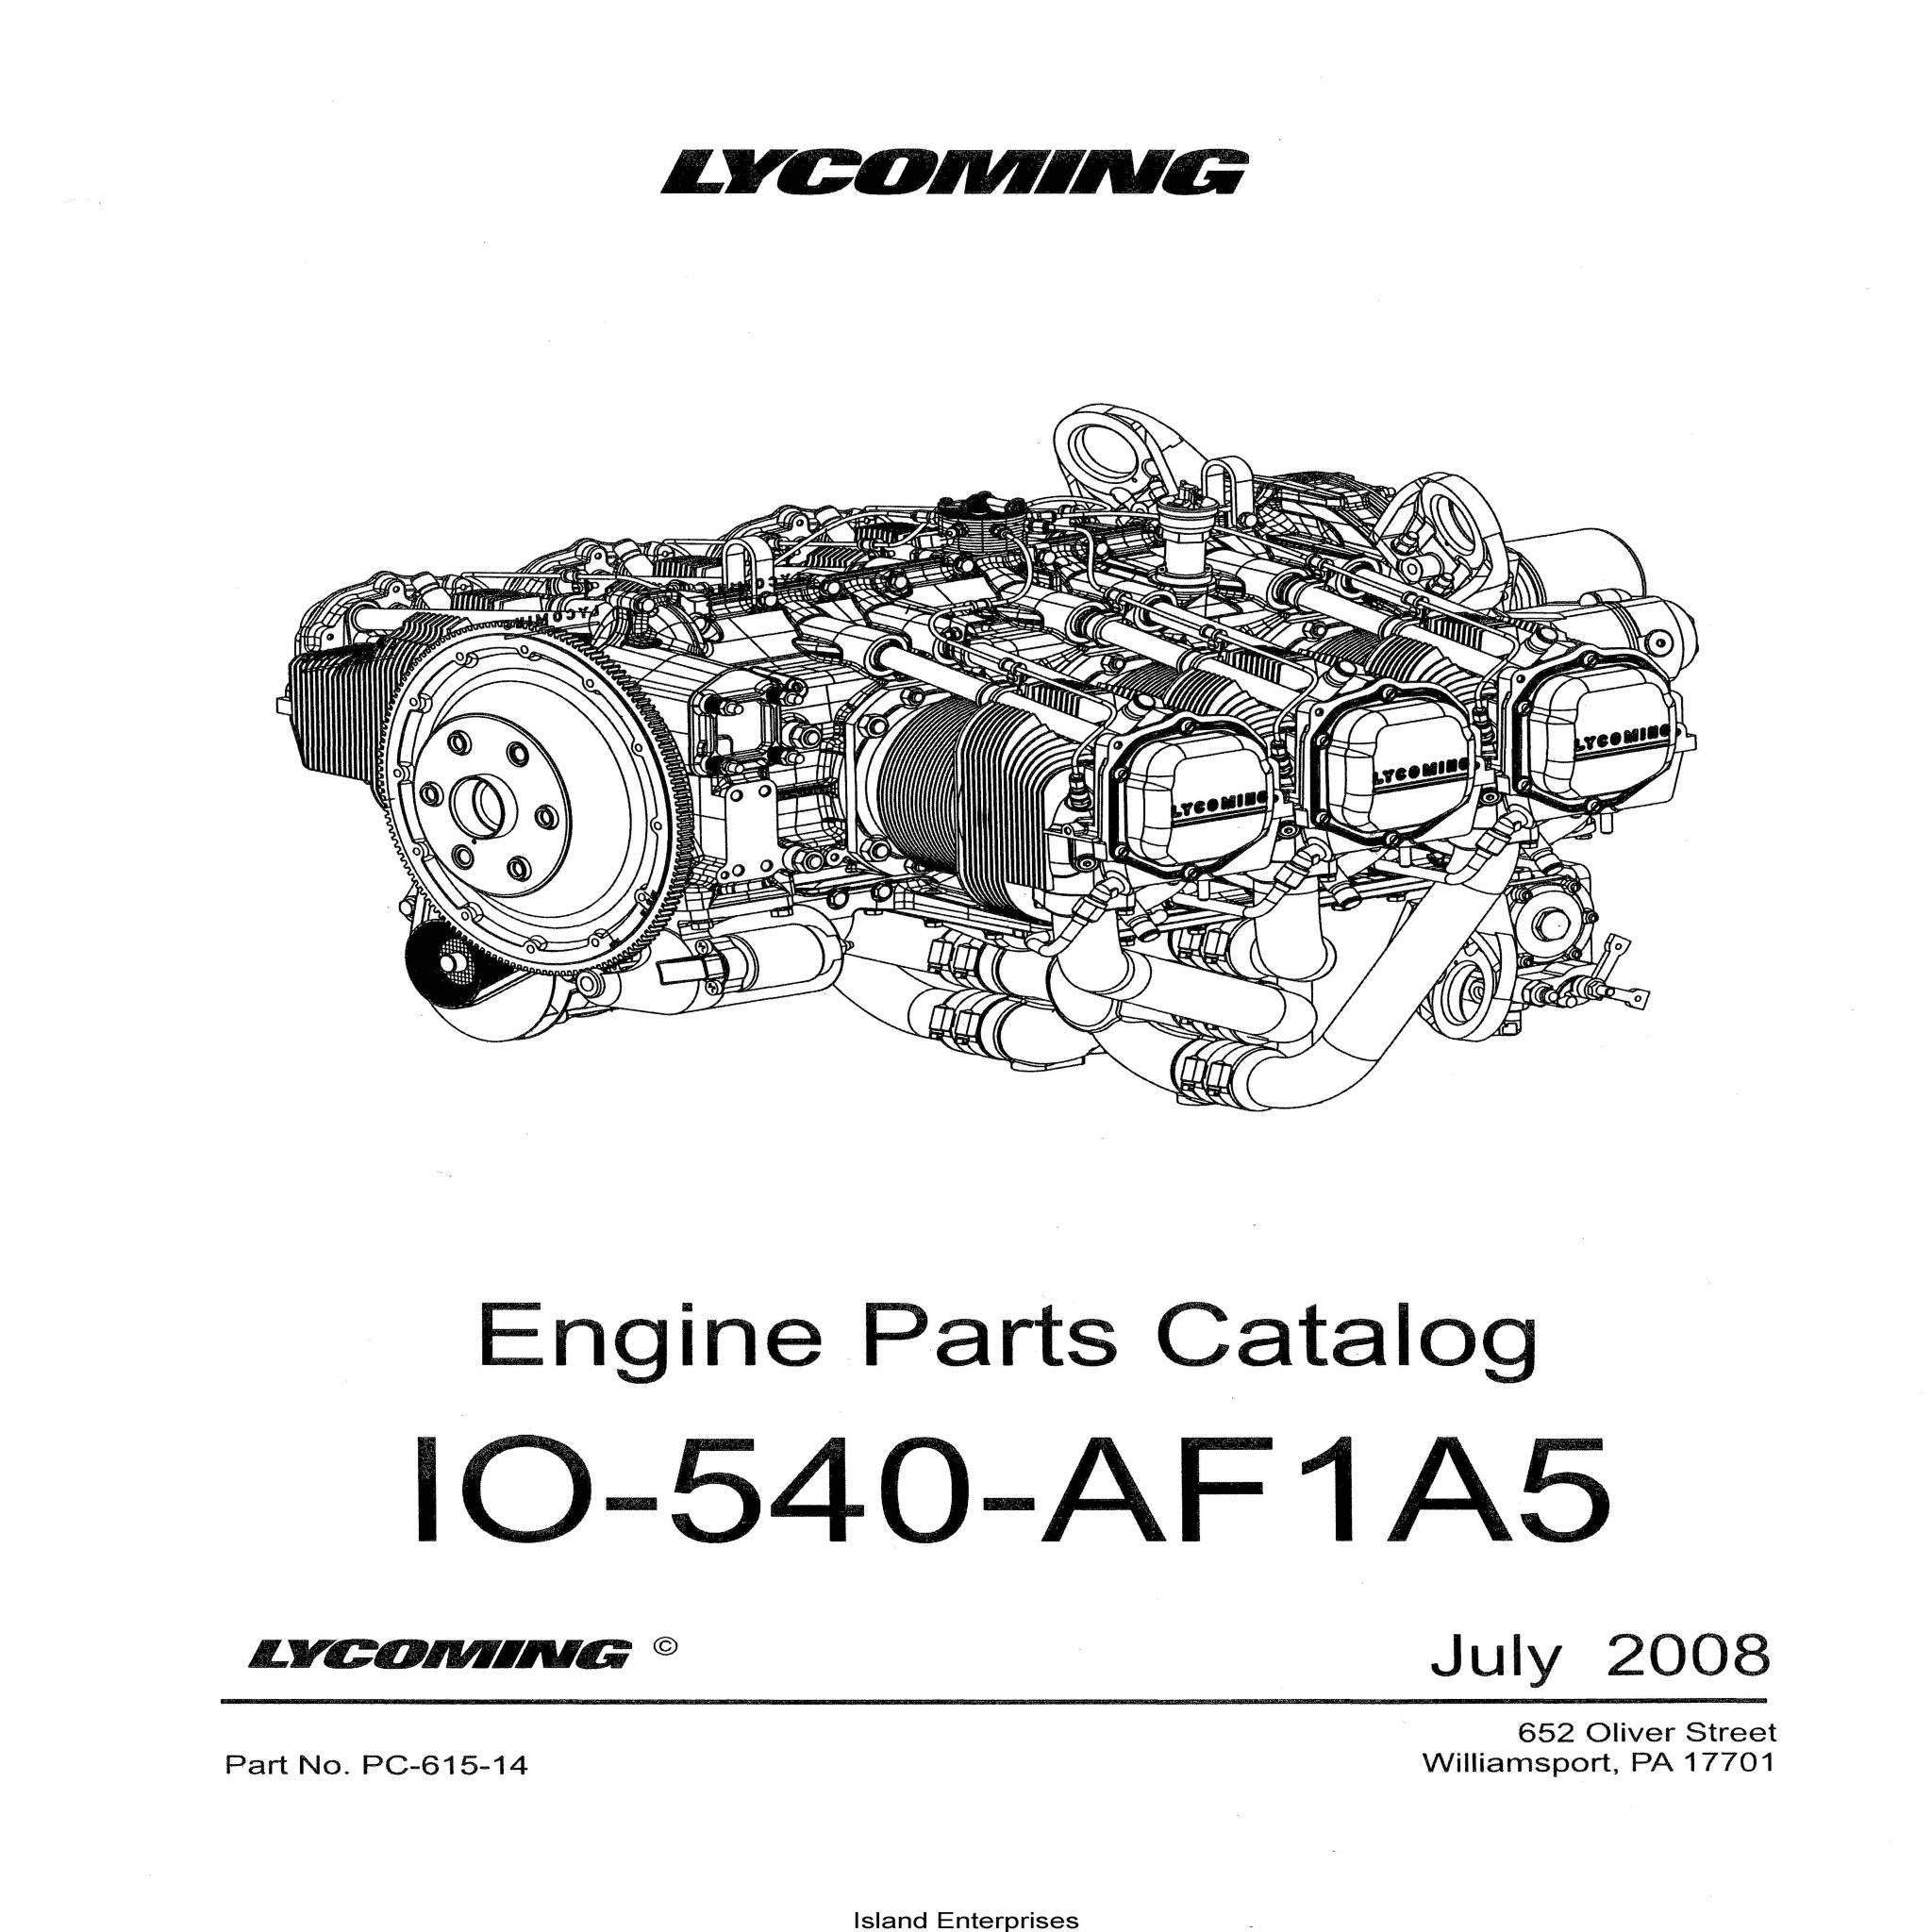 Lycoming Parts Catalog PC-615-14 IO-540-AF1A5